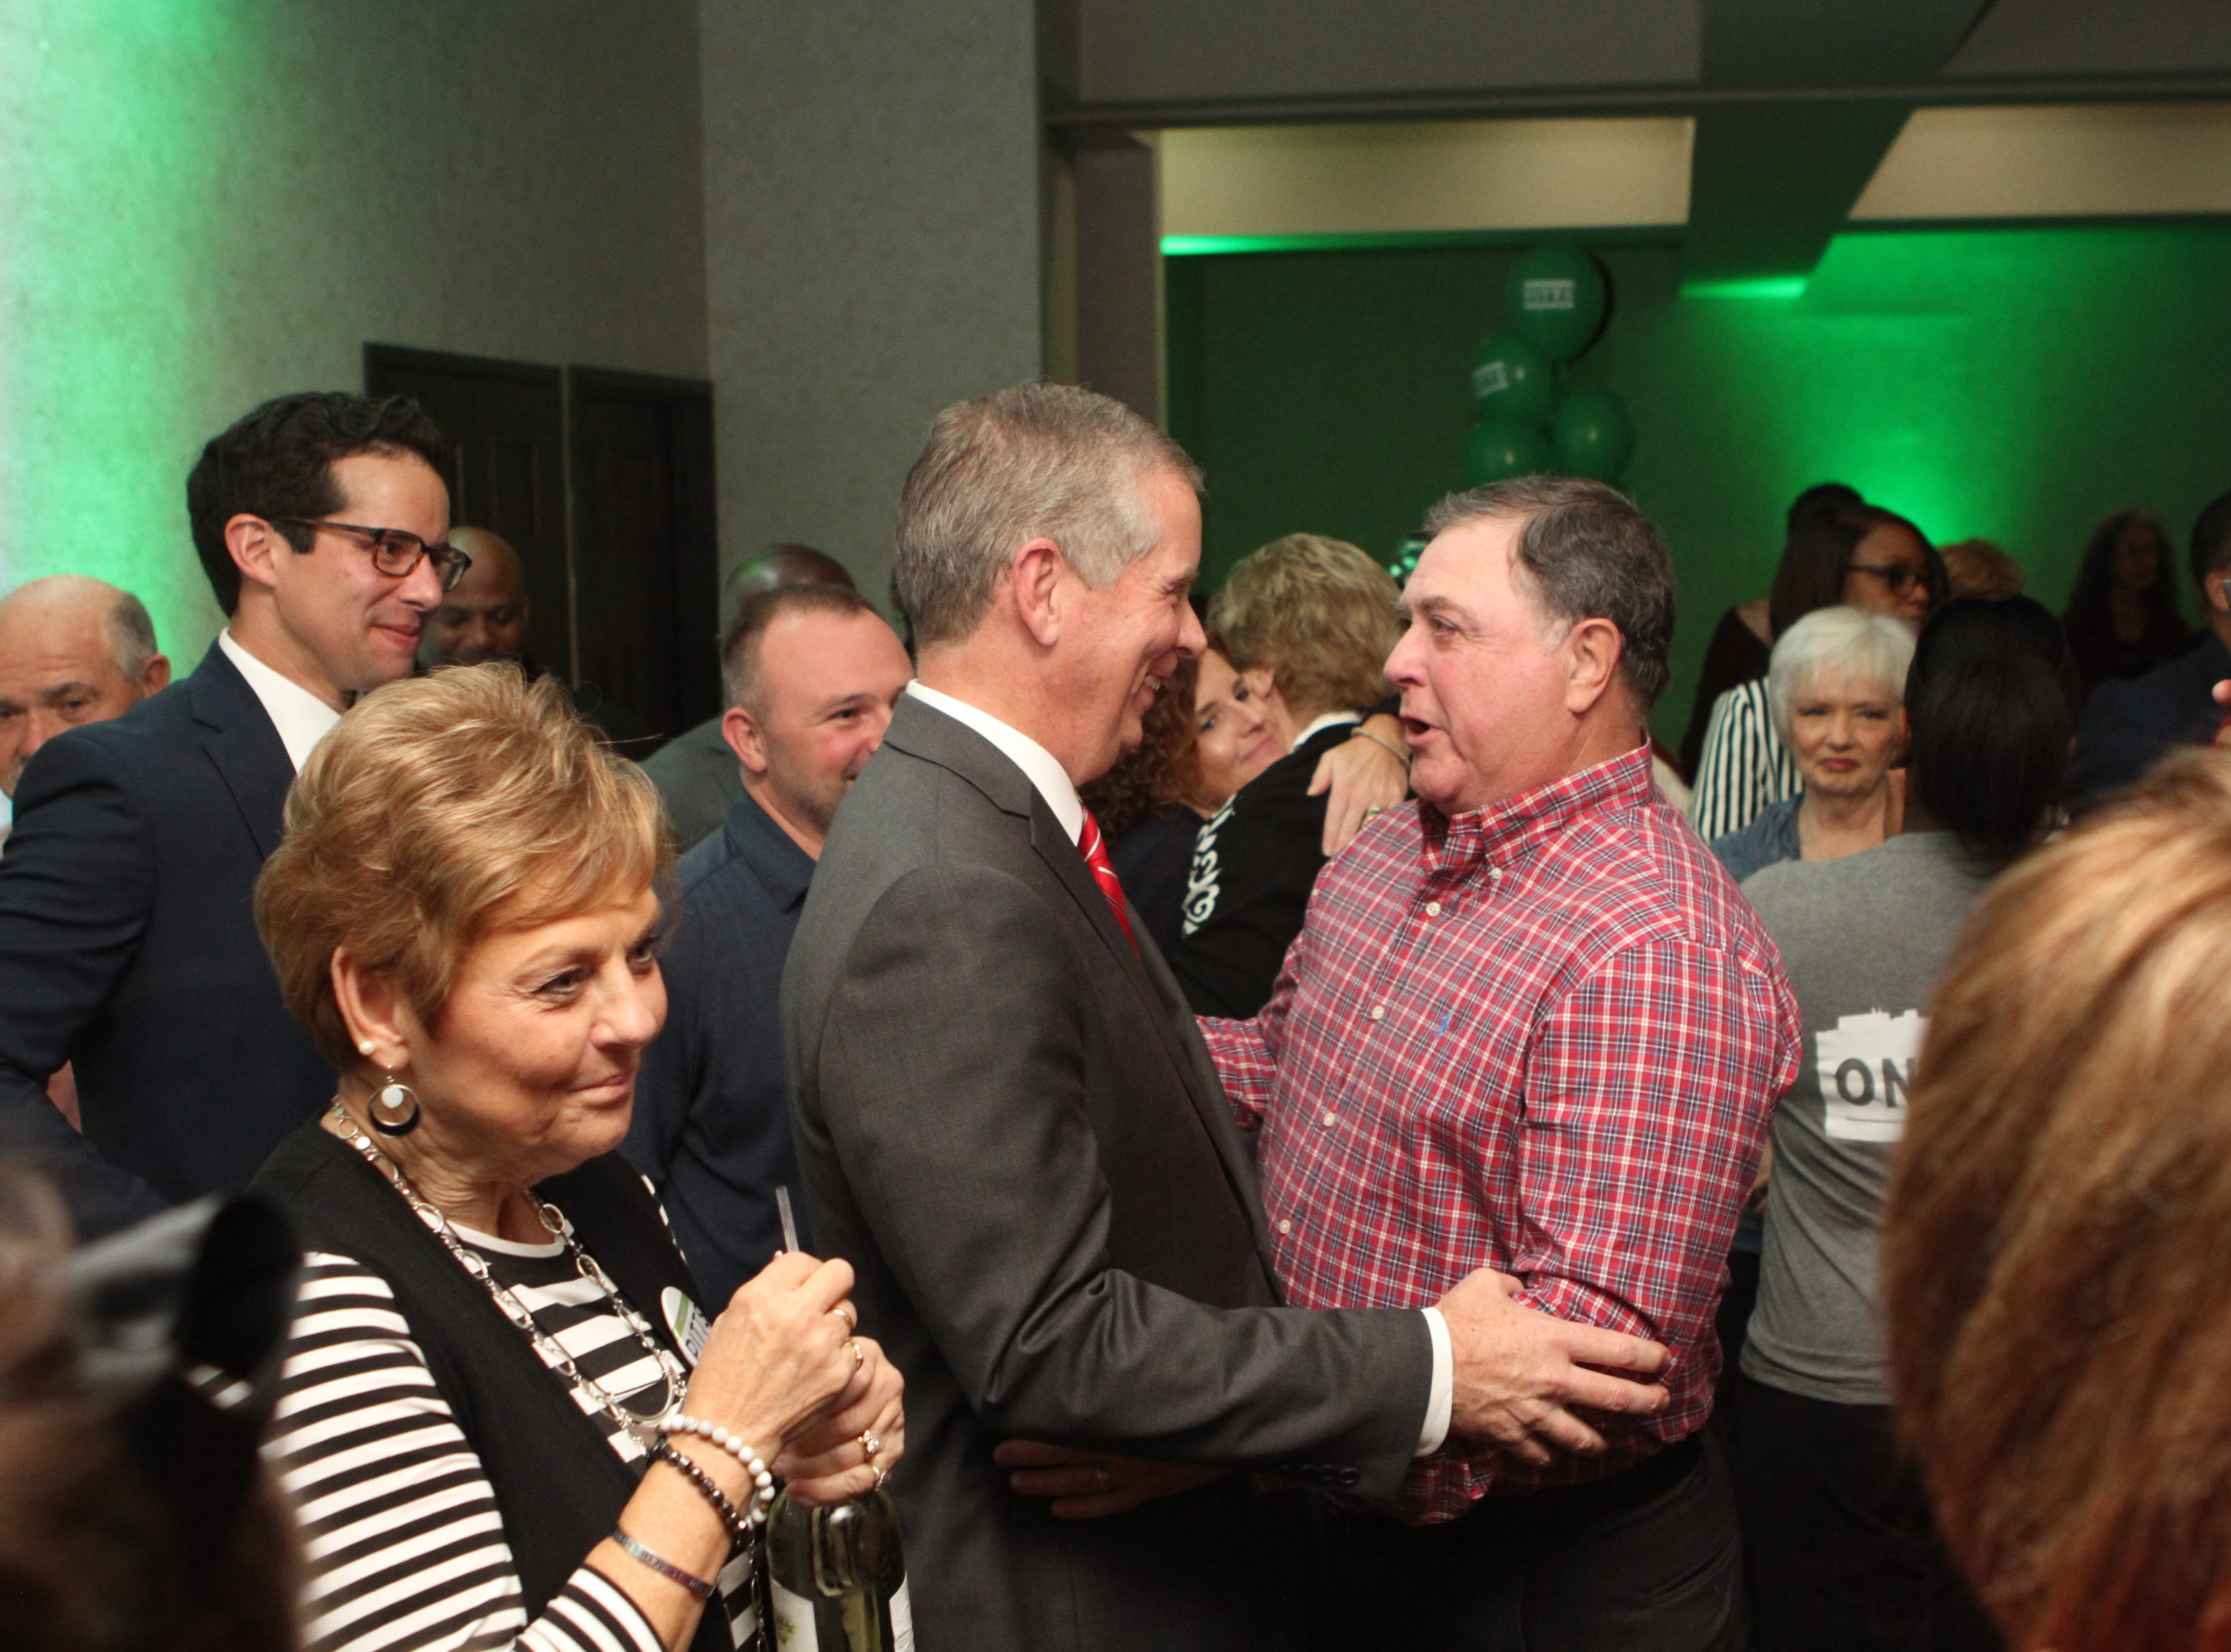 Mayor Joe Pitts is congratulated on his mayoral win by former Mayor Don Trotter at the Riverview Inn on Tuesday, Nov. 6, 2018.